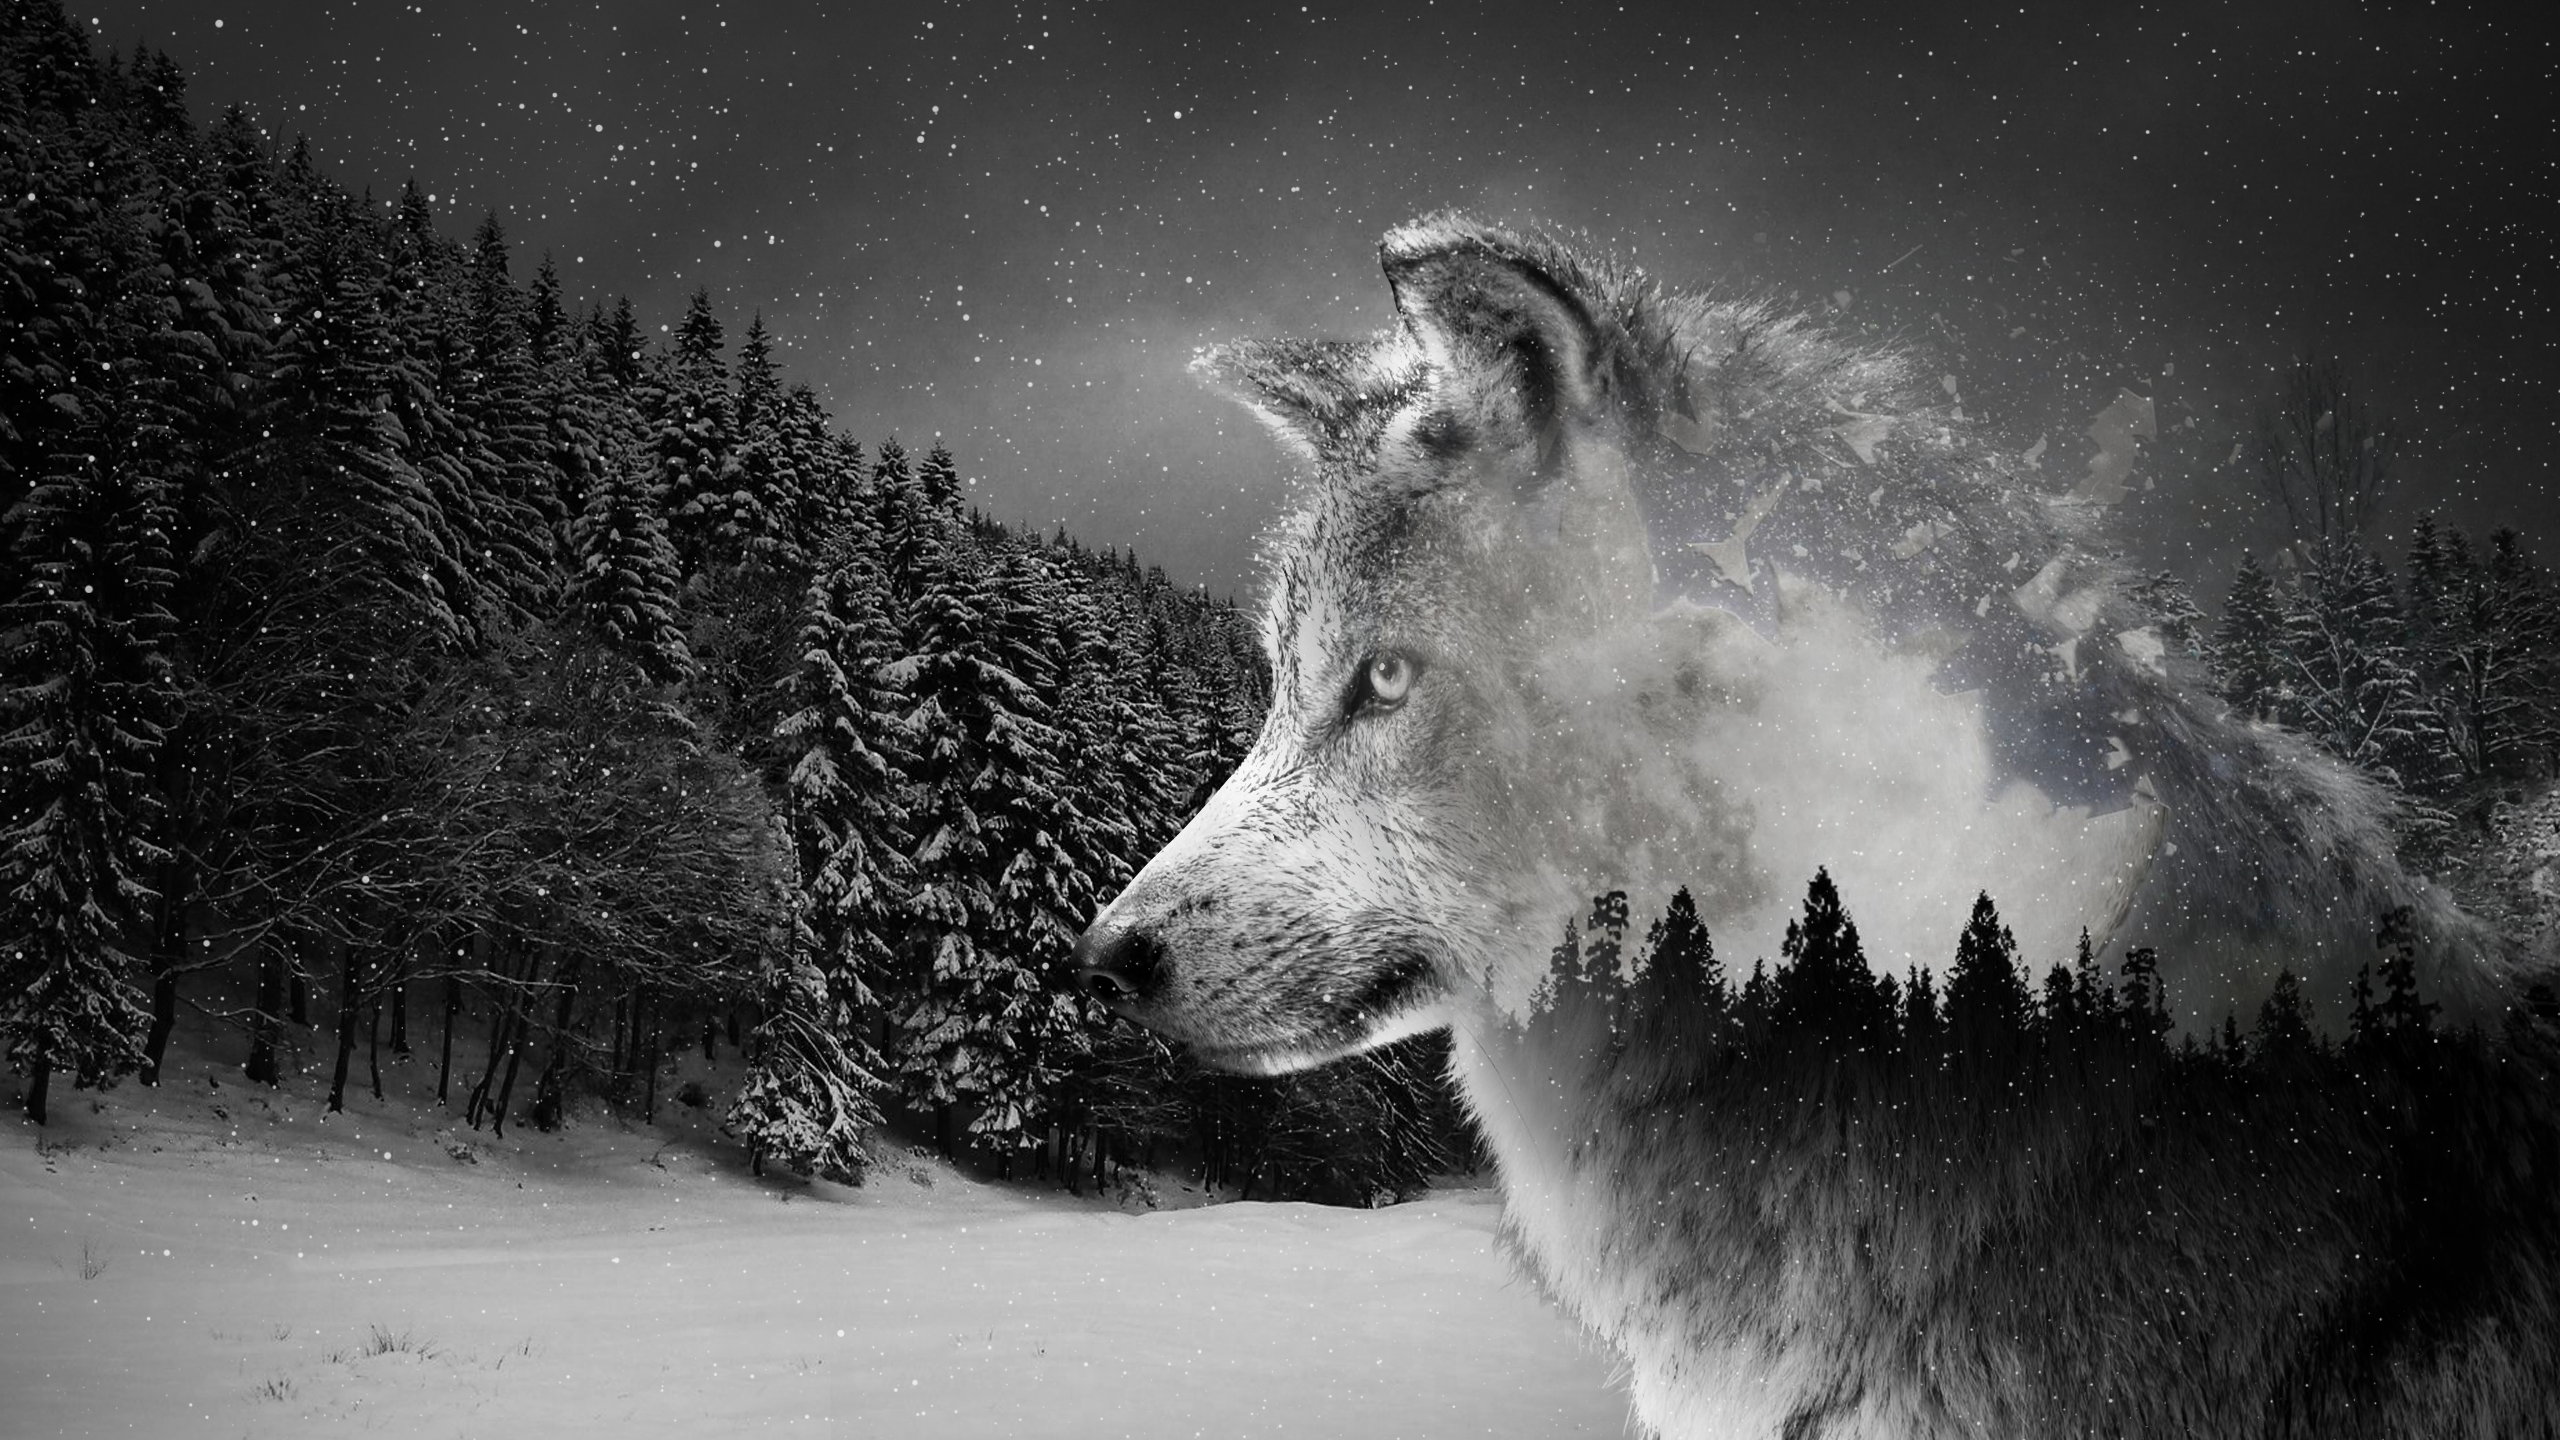 Silver Wolf Wallpaper 2560x1440 In 2020 Wolf Wallpaper Wolf Baby Wolves